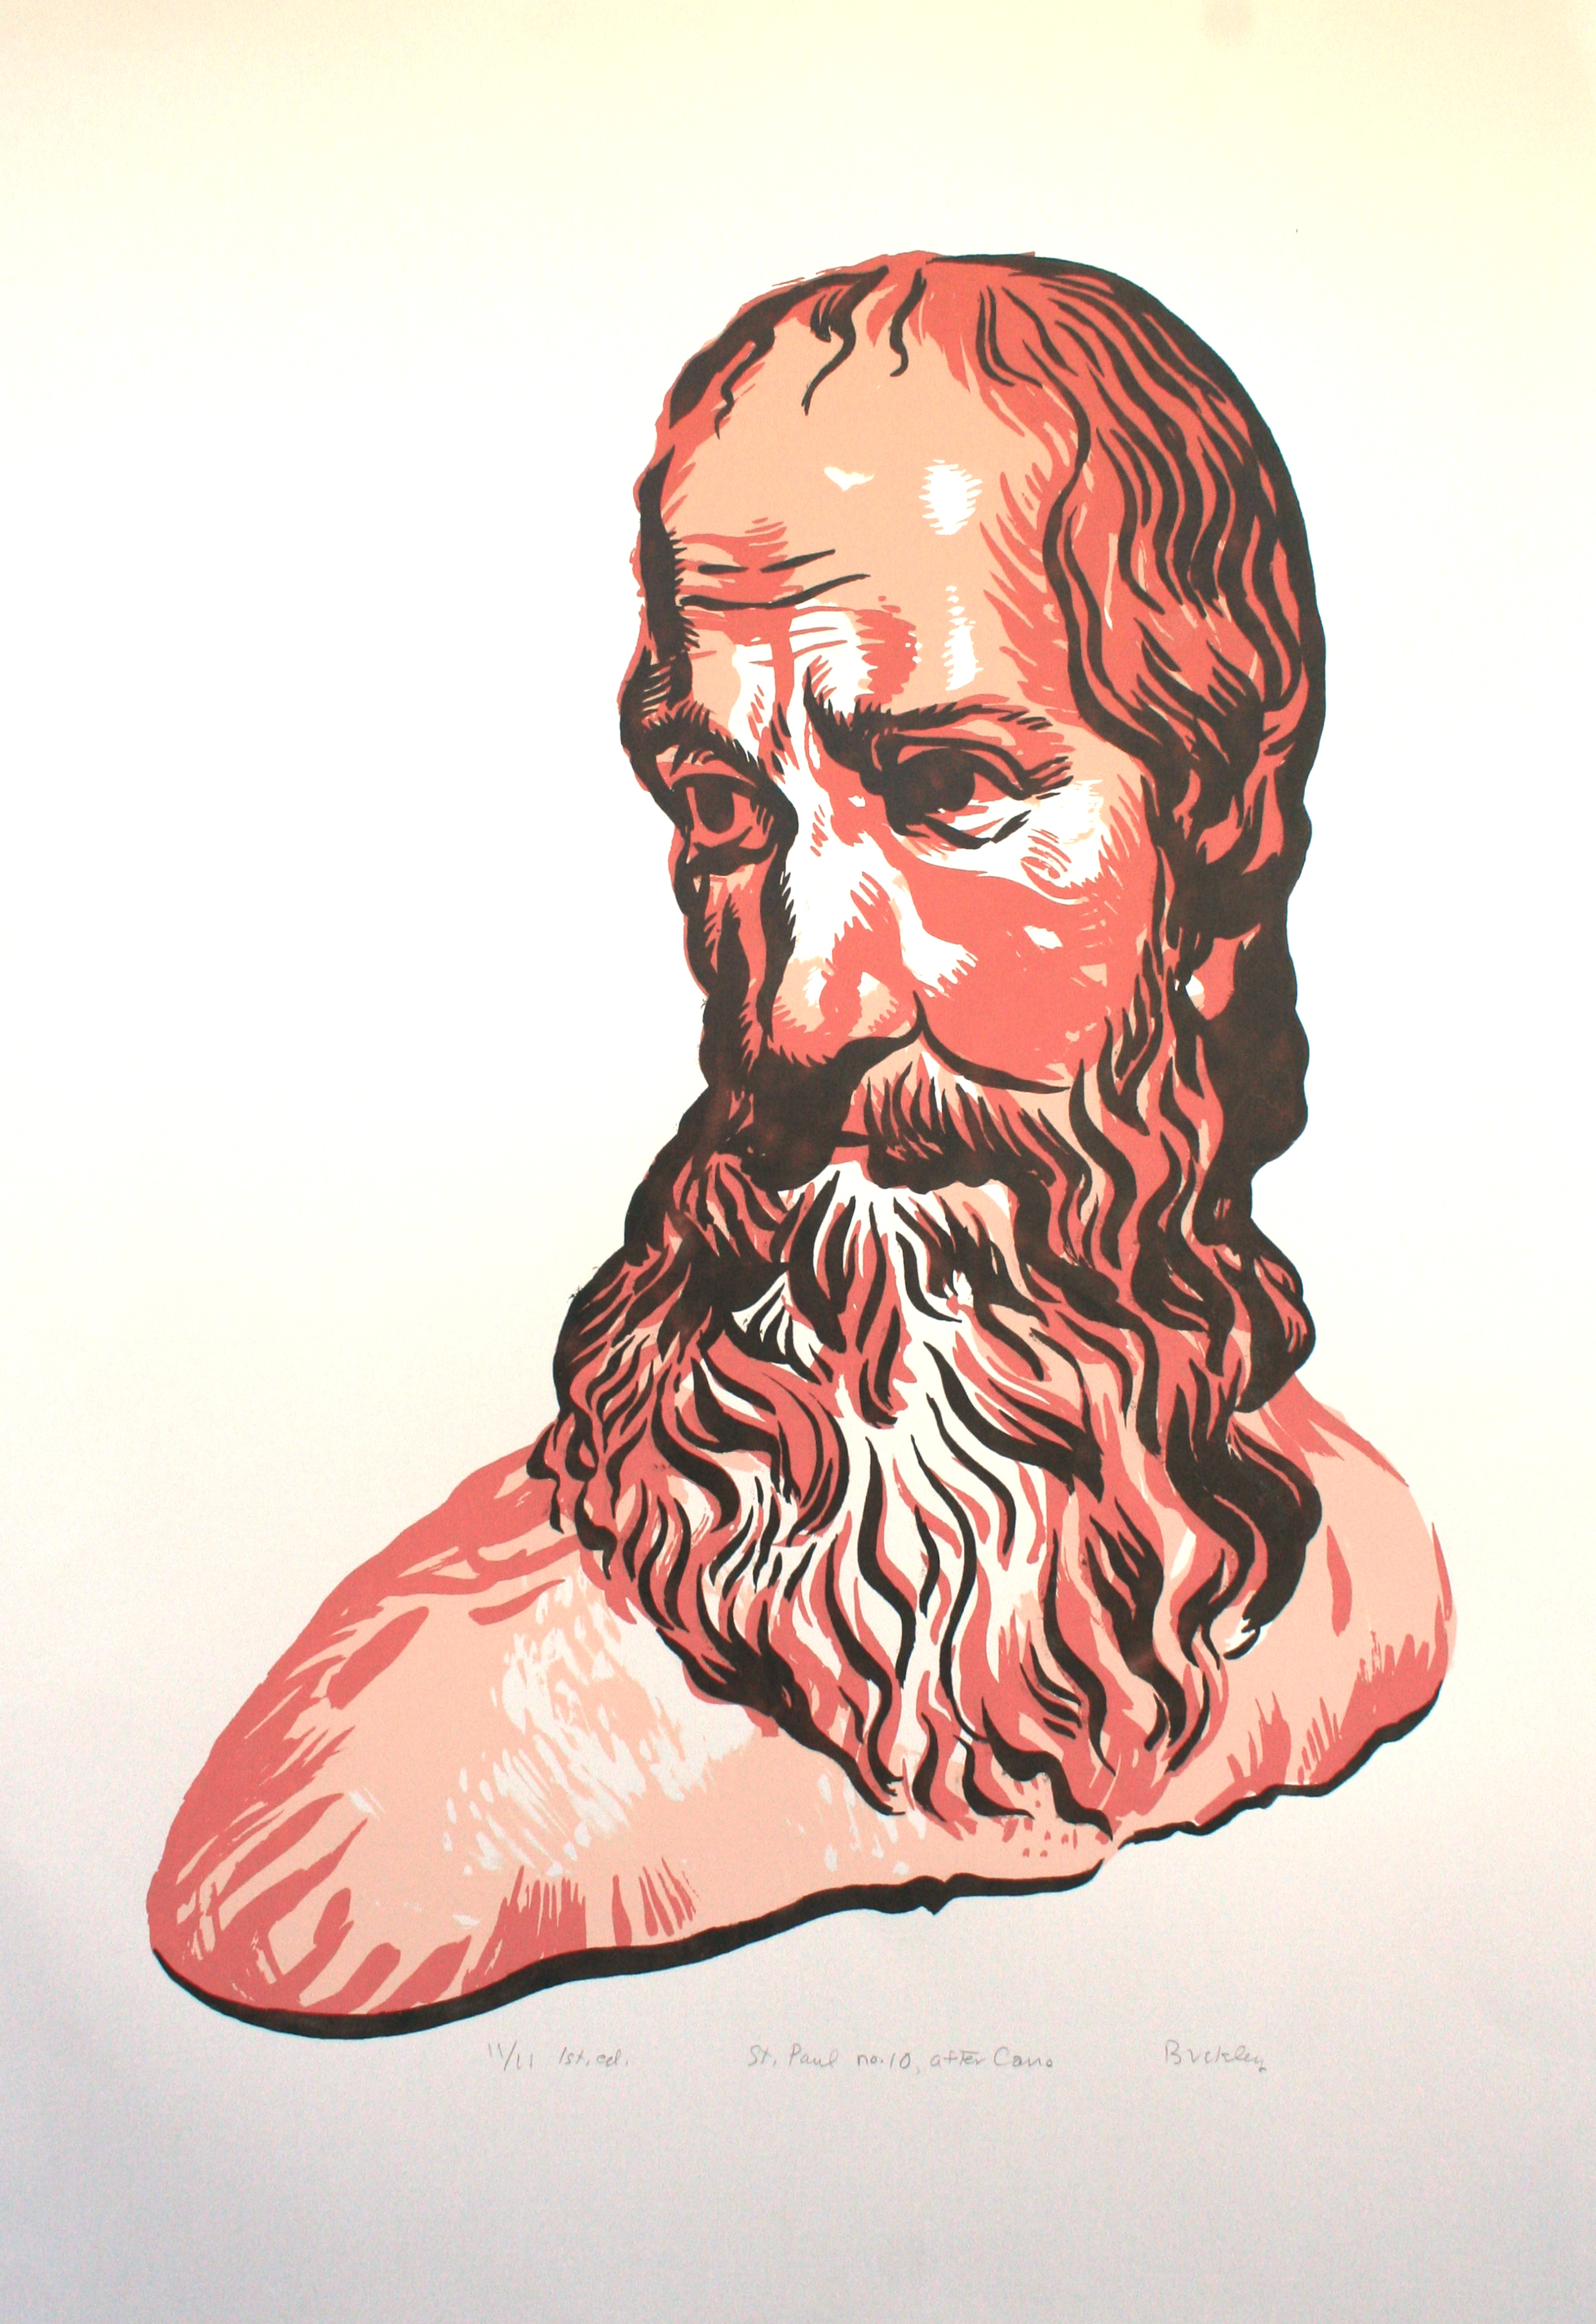 St. Paul no. 10, after Cano. 1st ed. 11/11 Image 70 x 50 cm, screen print on pearlized paper